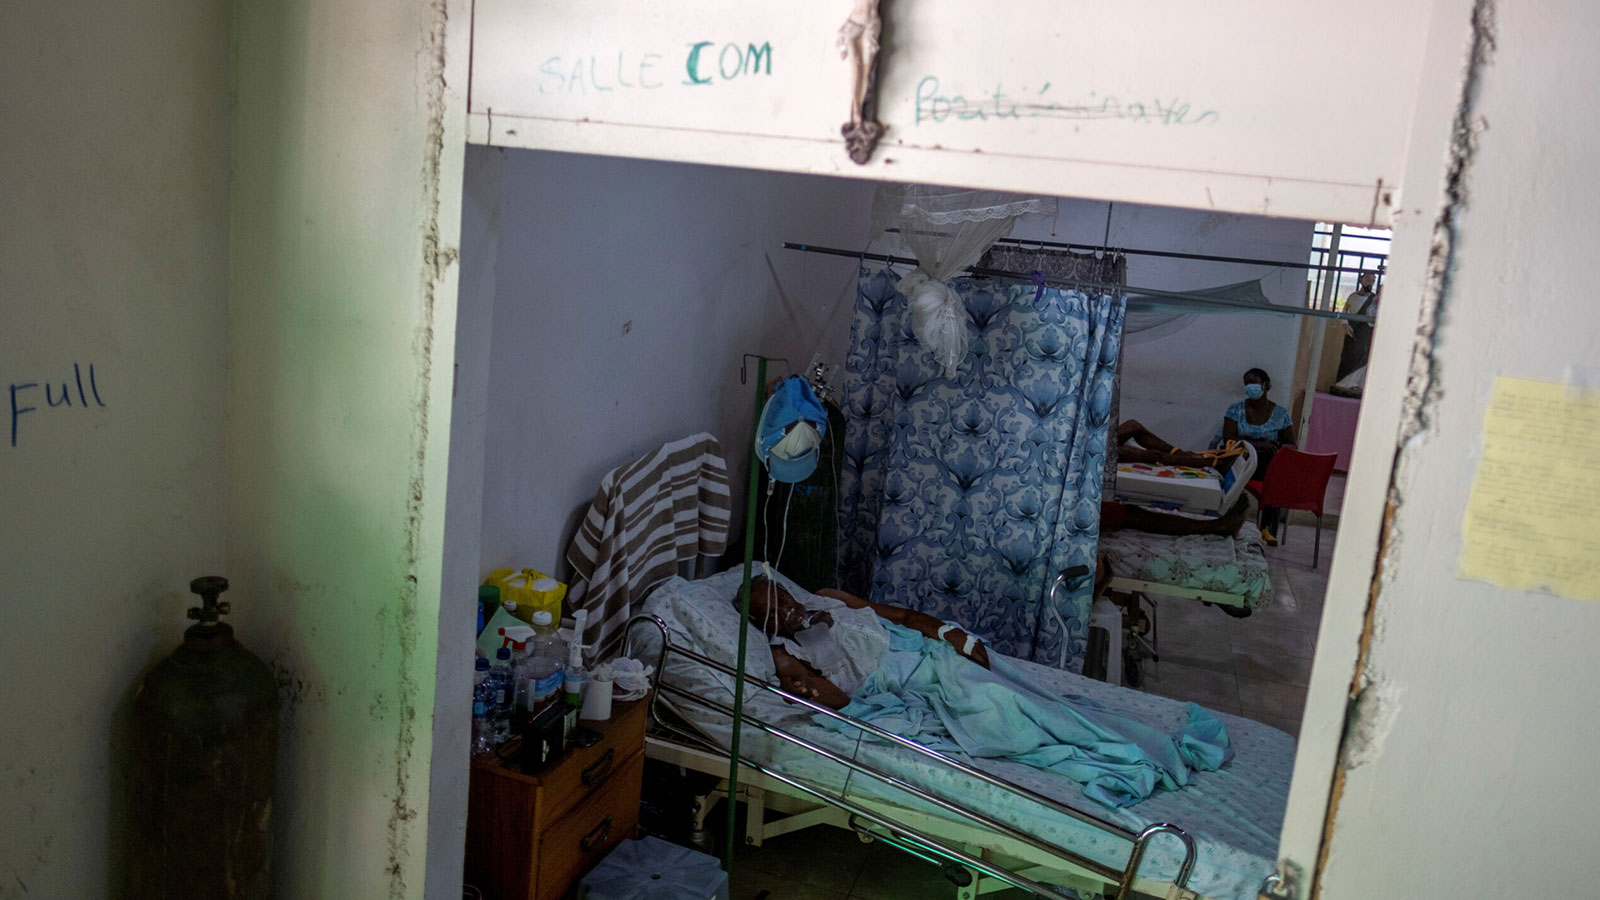 COVID-19 patients receive treatment at the St. Luke Foundation for Haiti hospital